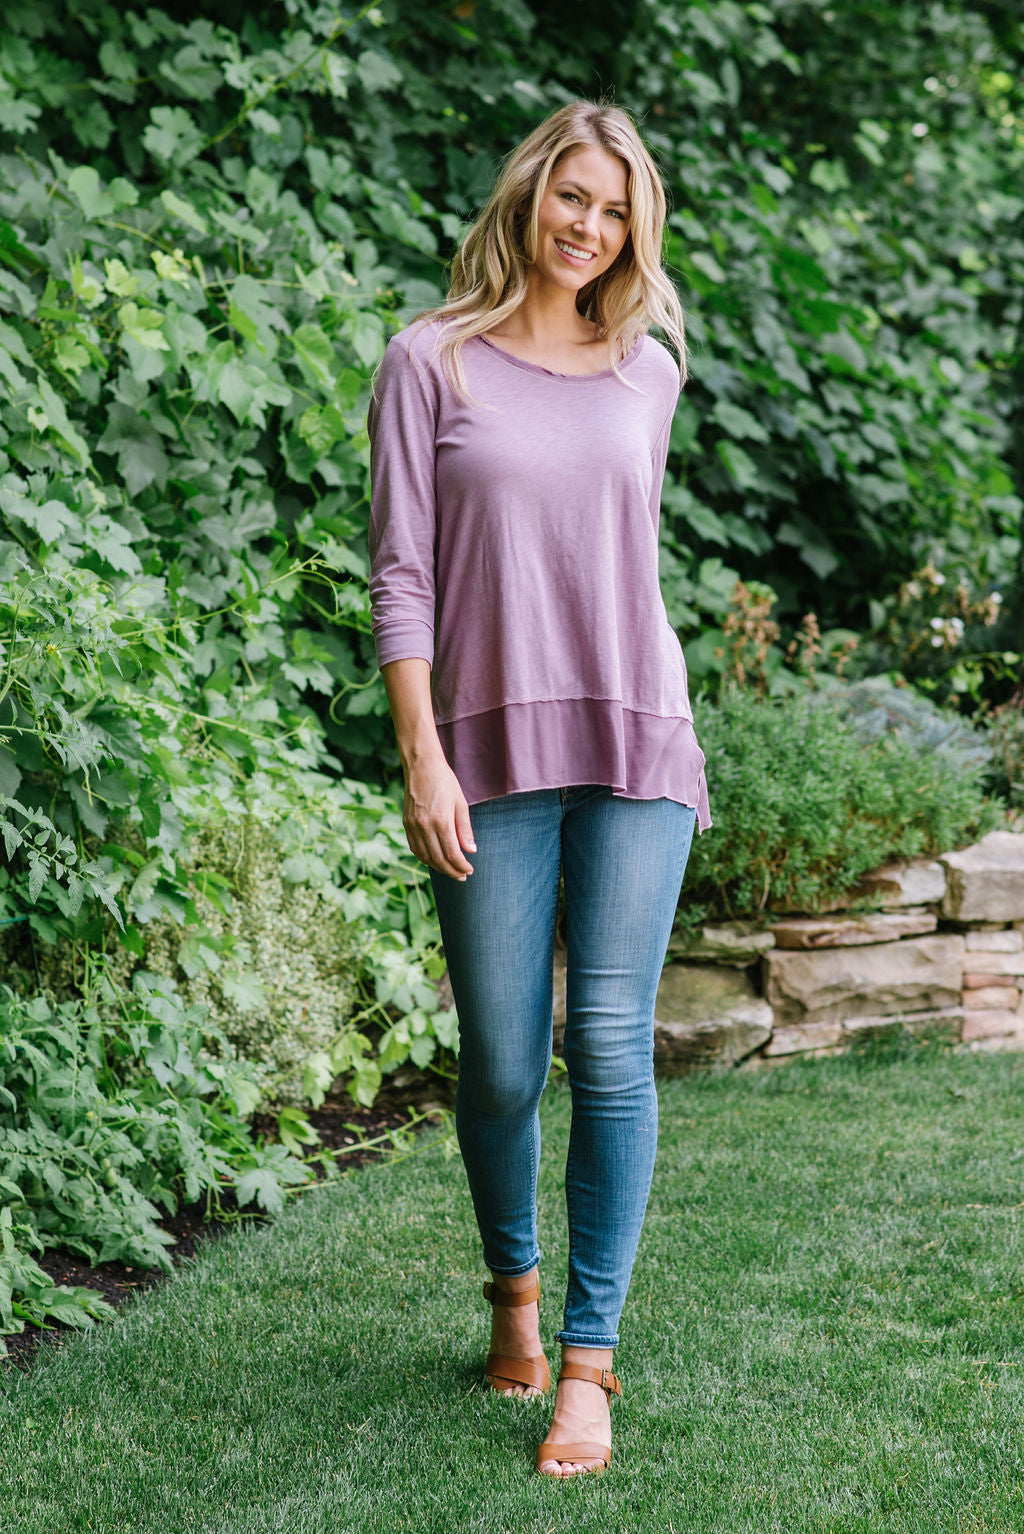 BROOKE LAYERED SCOOP NECK TOP IN VIOLET